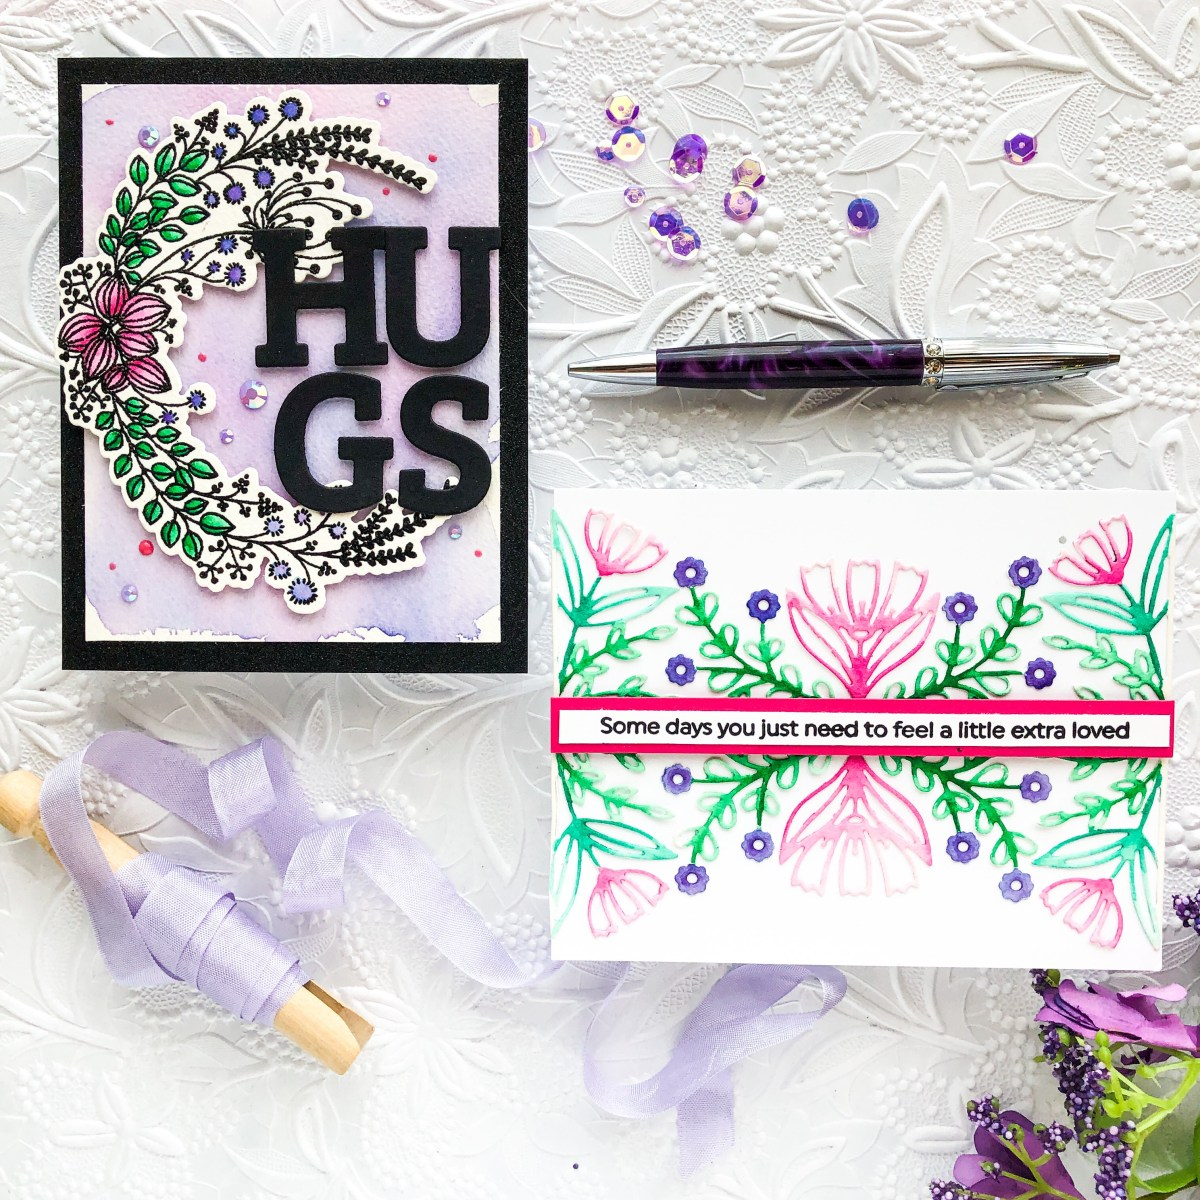 Pinkfresh Studios January Release Blog Hop+Giveaway!